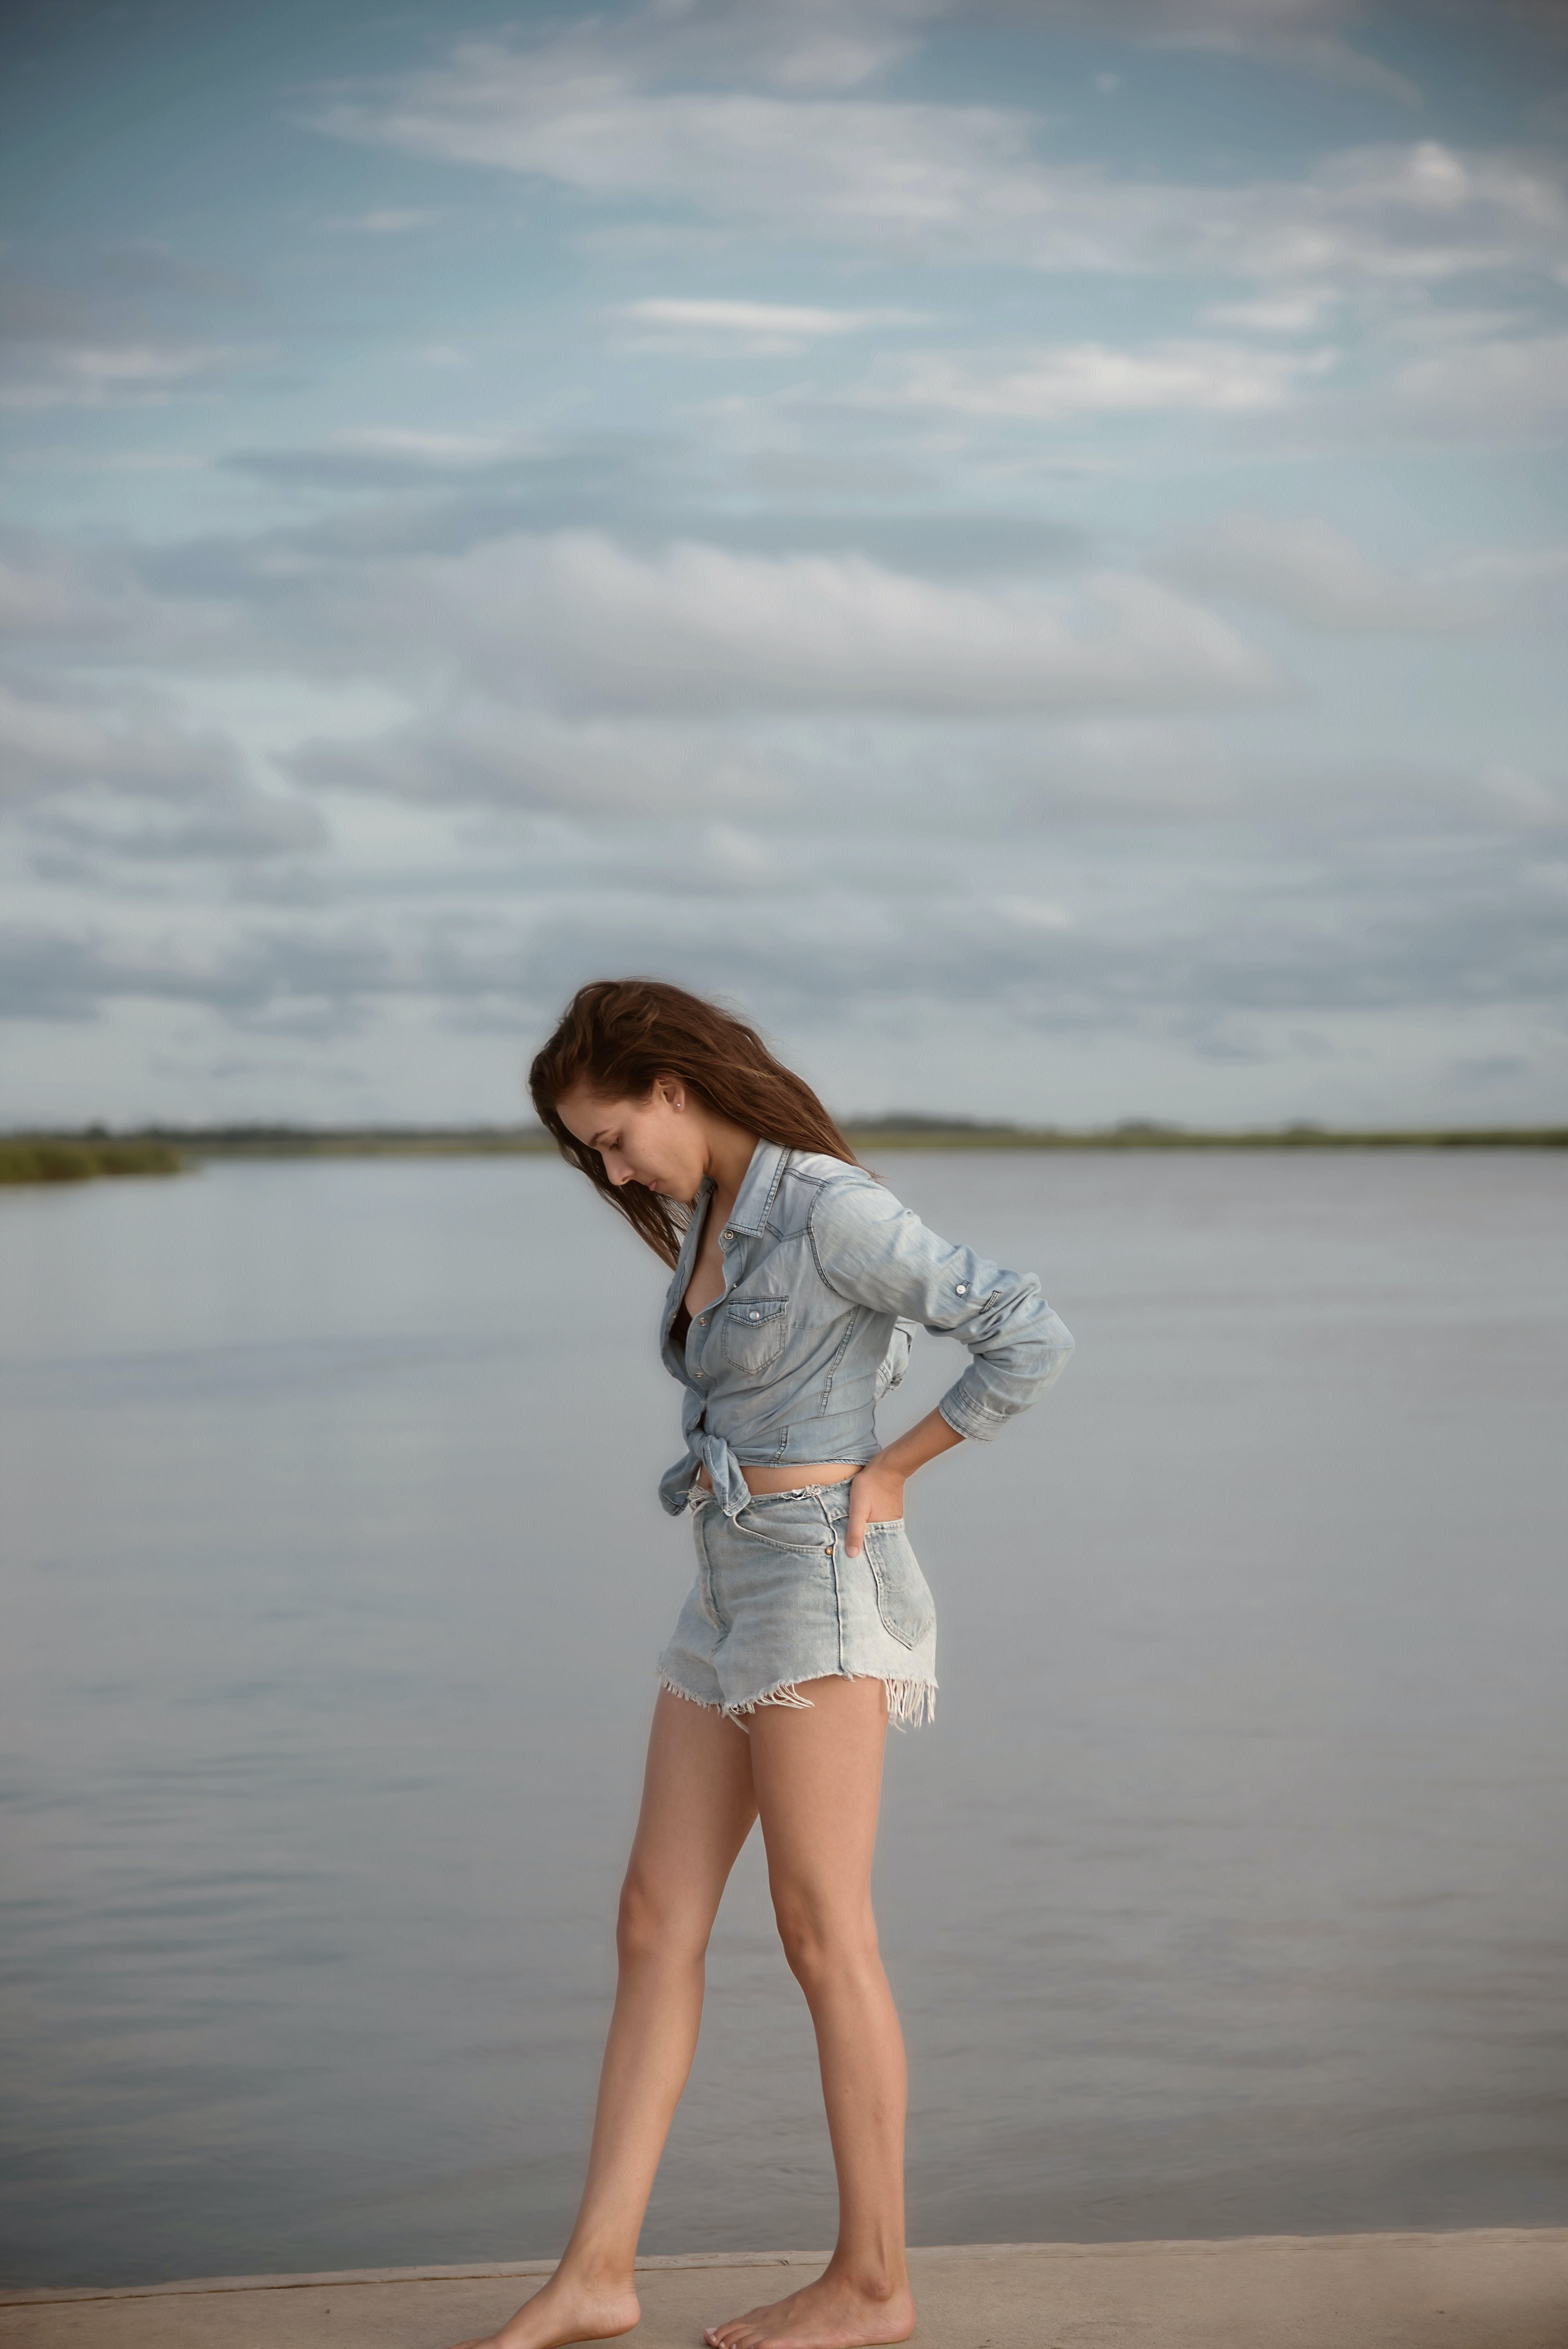 Woman Wearing Gray Denim Tie-front Long-sleeved Shirt and Short Shorts Walking on Isle Near Body of Water